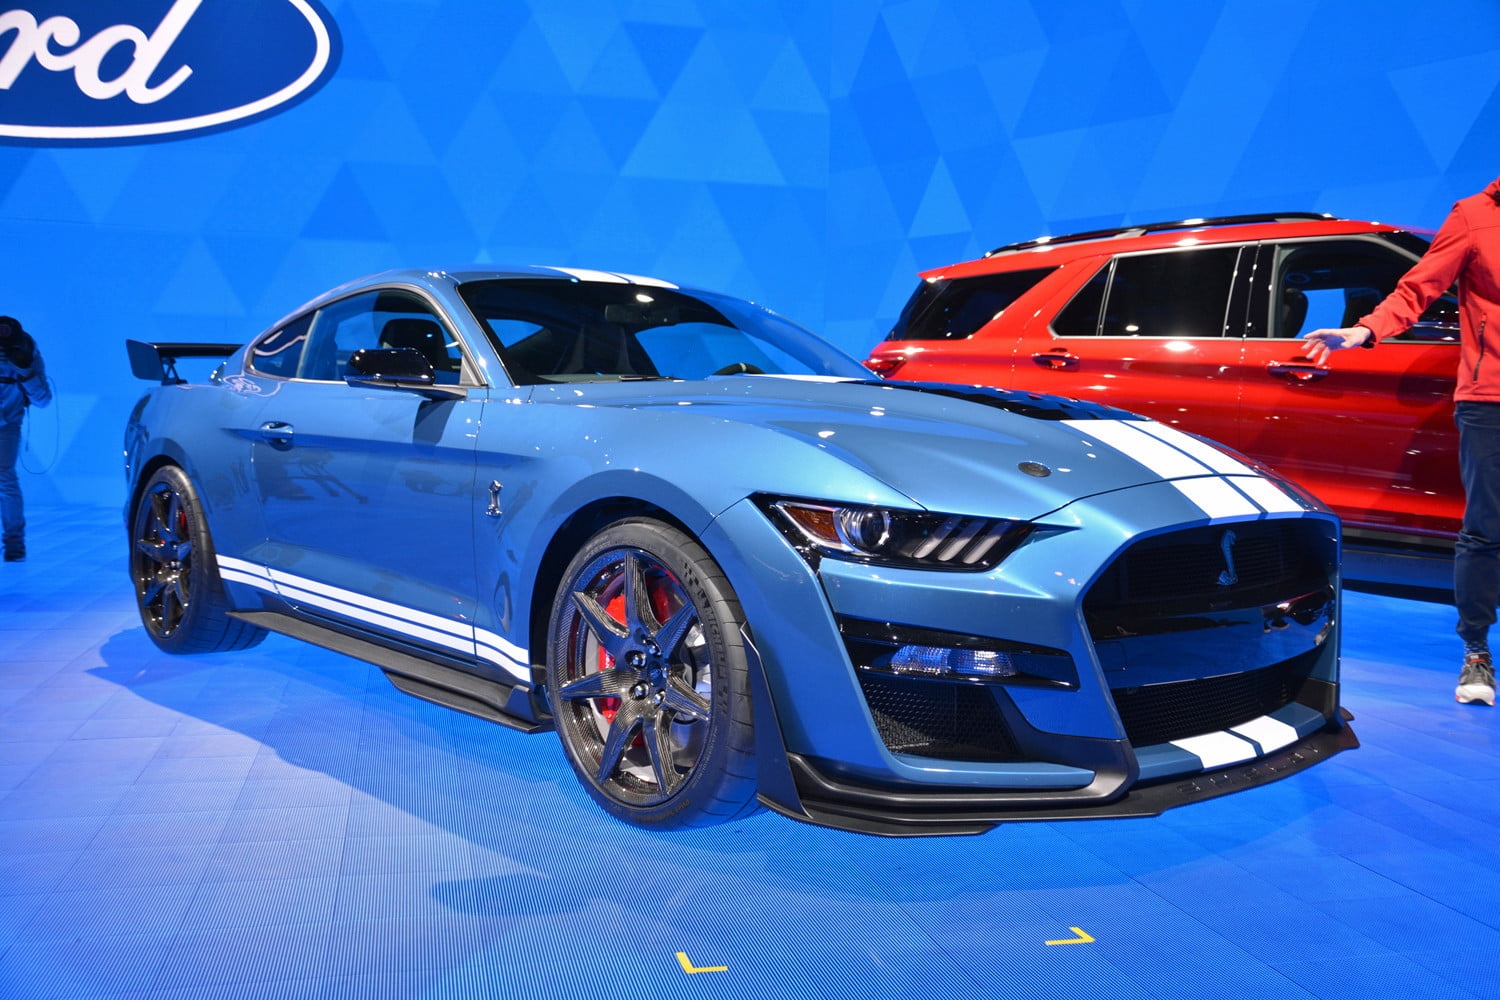 34 New 2019 Ford Mustang Shelby Gt500 Photos